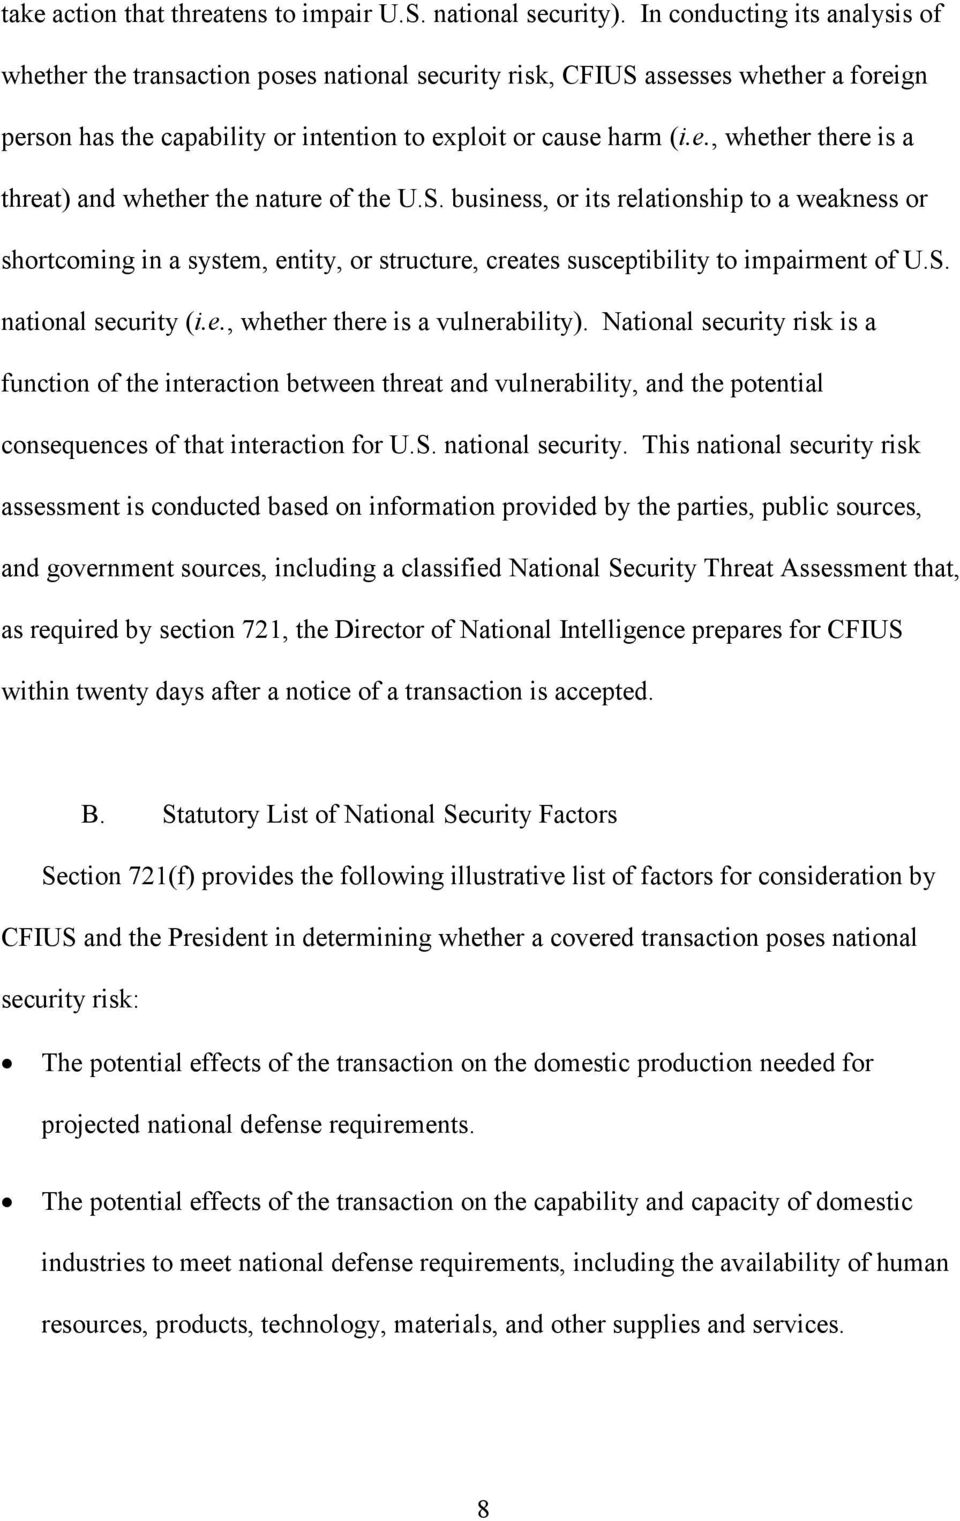 S. business, or its relationship to a weakness or shortcoming in a system, entity, or structure, creates susceptibility to impairment of U.S. national security (i.e., whether there is a vulnerability).